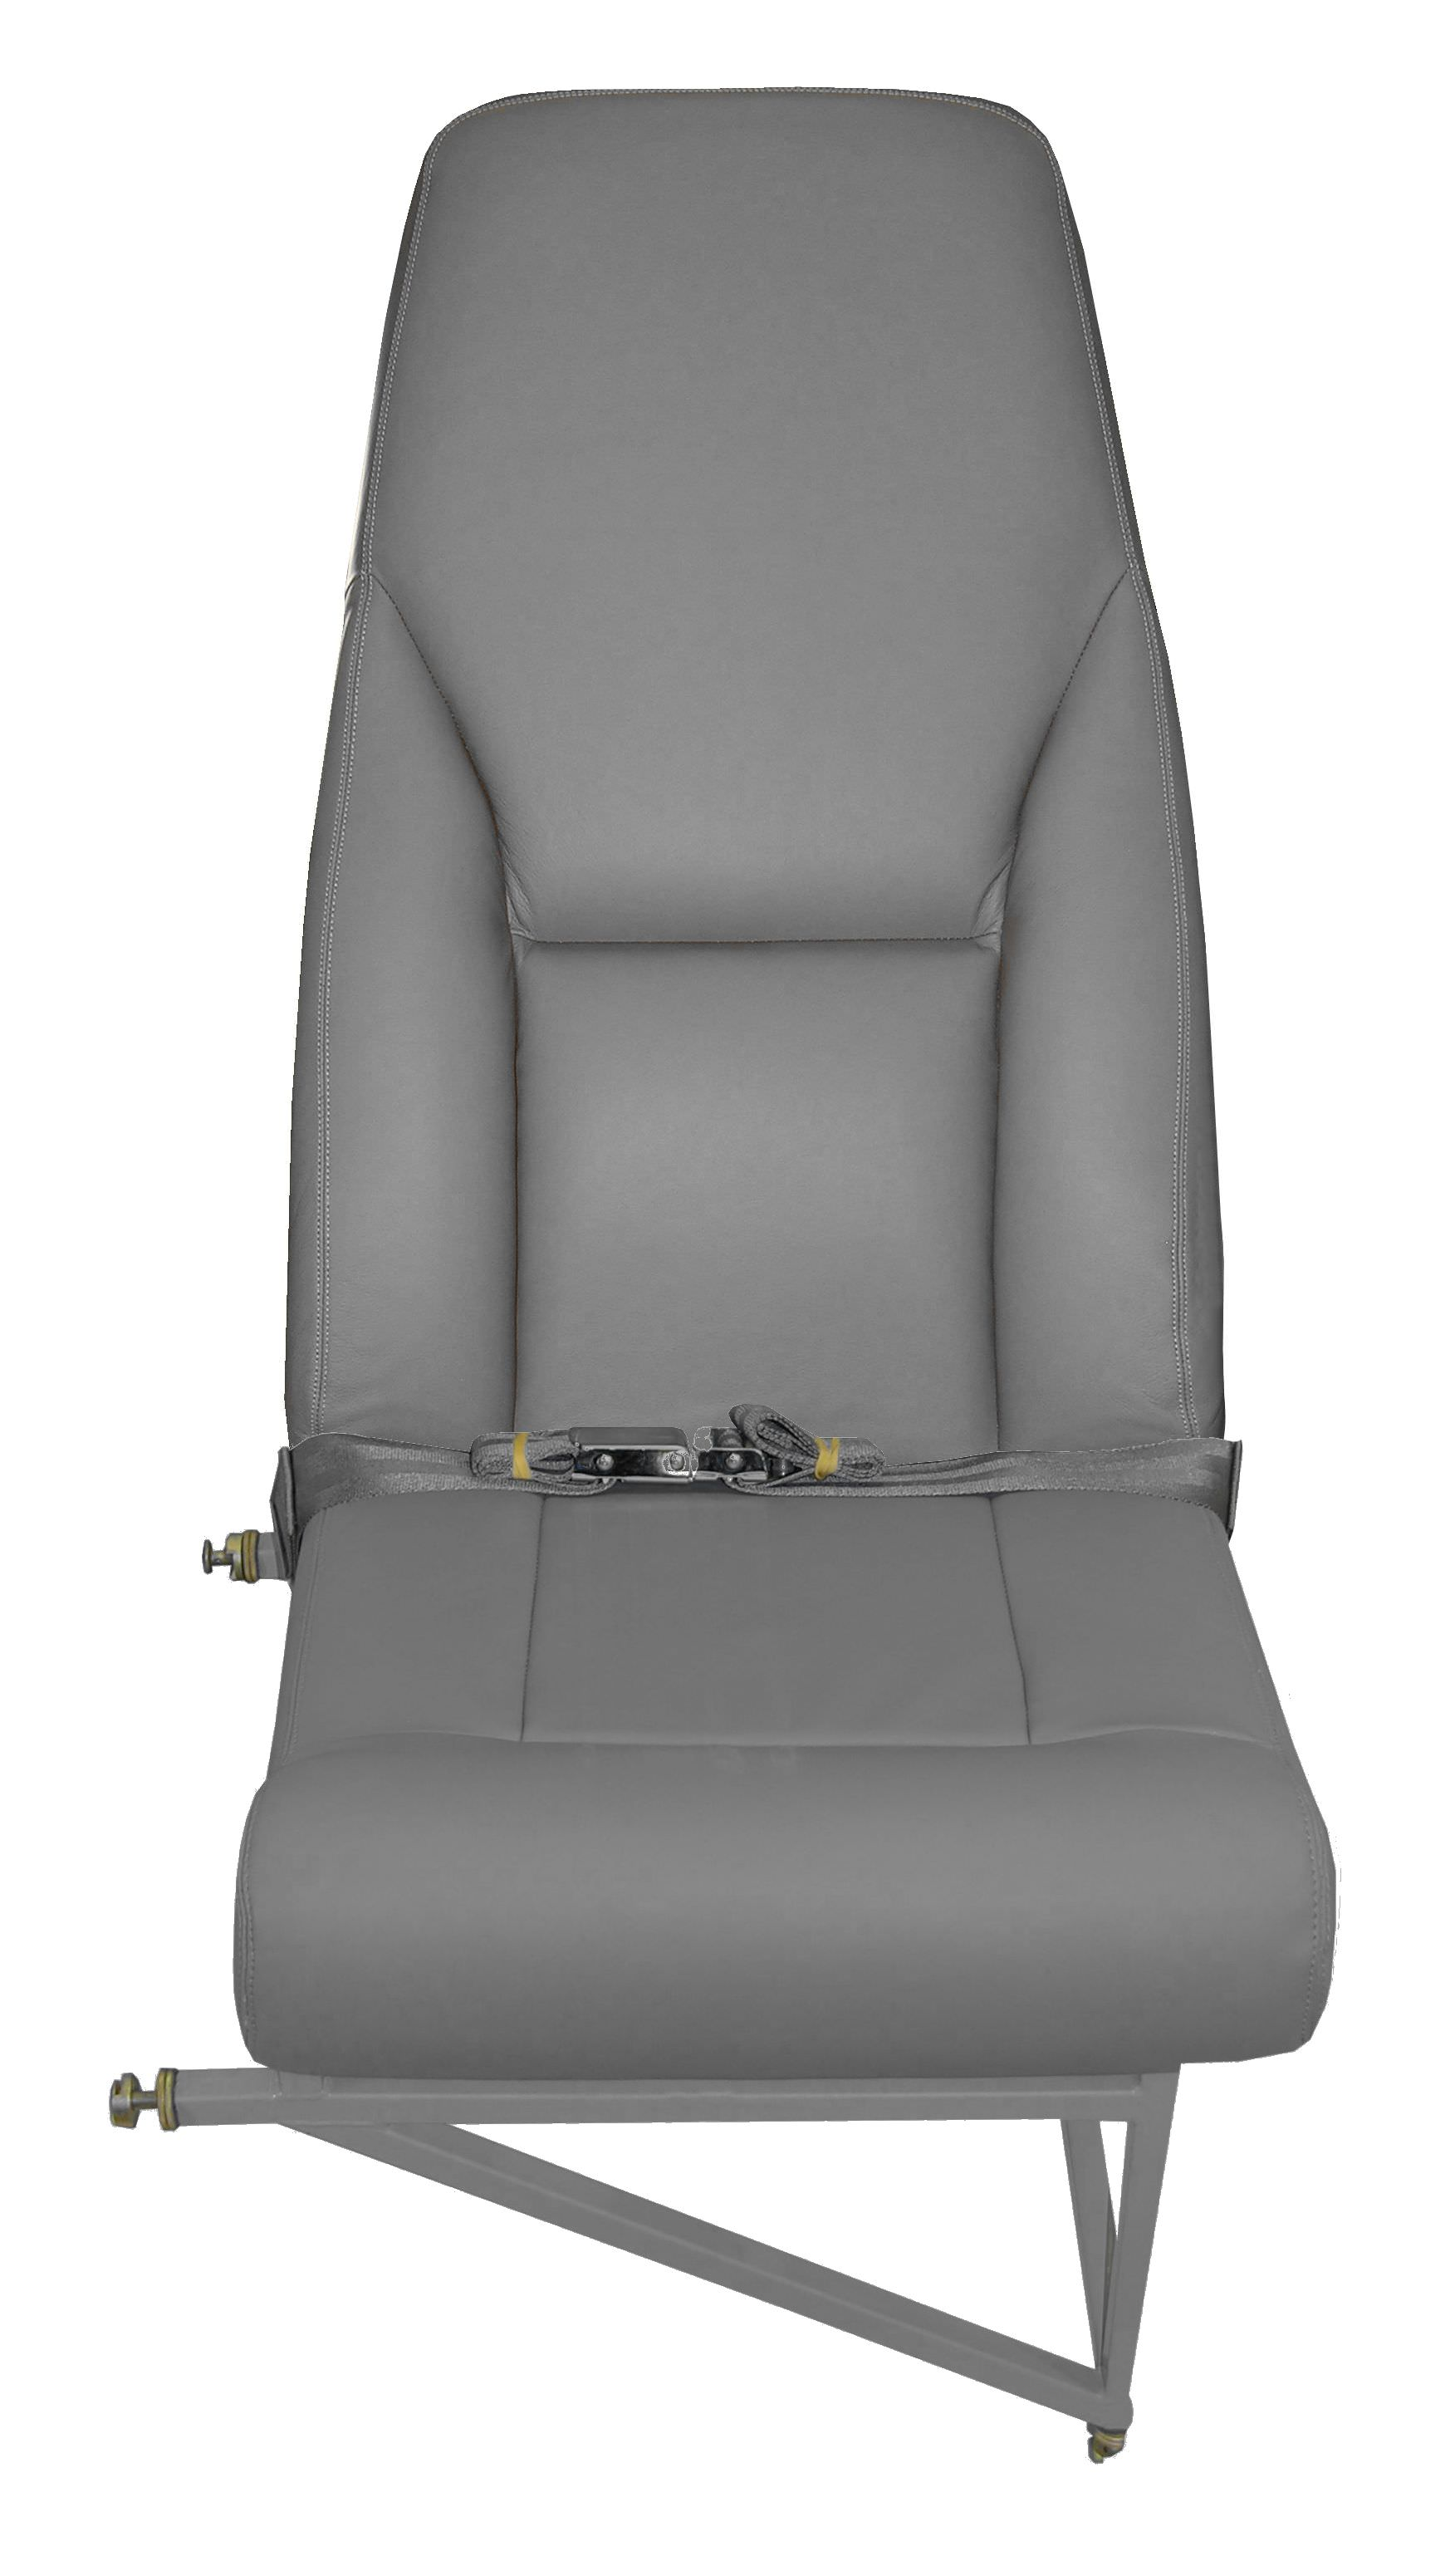 AvFab's Beechcraft 1900 series high density seat has been engineered for comfort, durability and affordability. It was designed to enhance the ease of occupants ingress and egress, by increasing leg, knee, foot room, and passenger comfort. It is best-suite